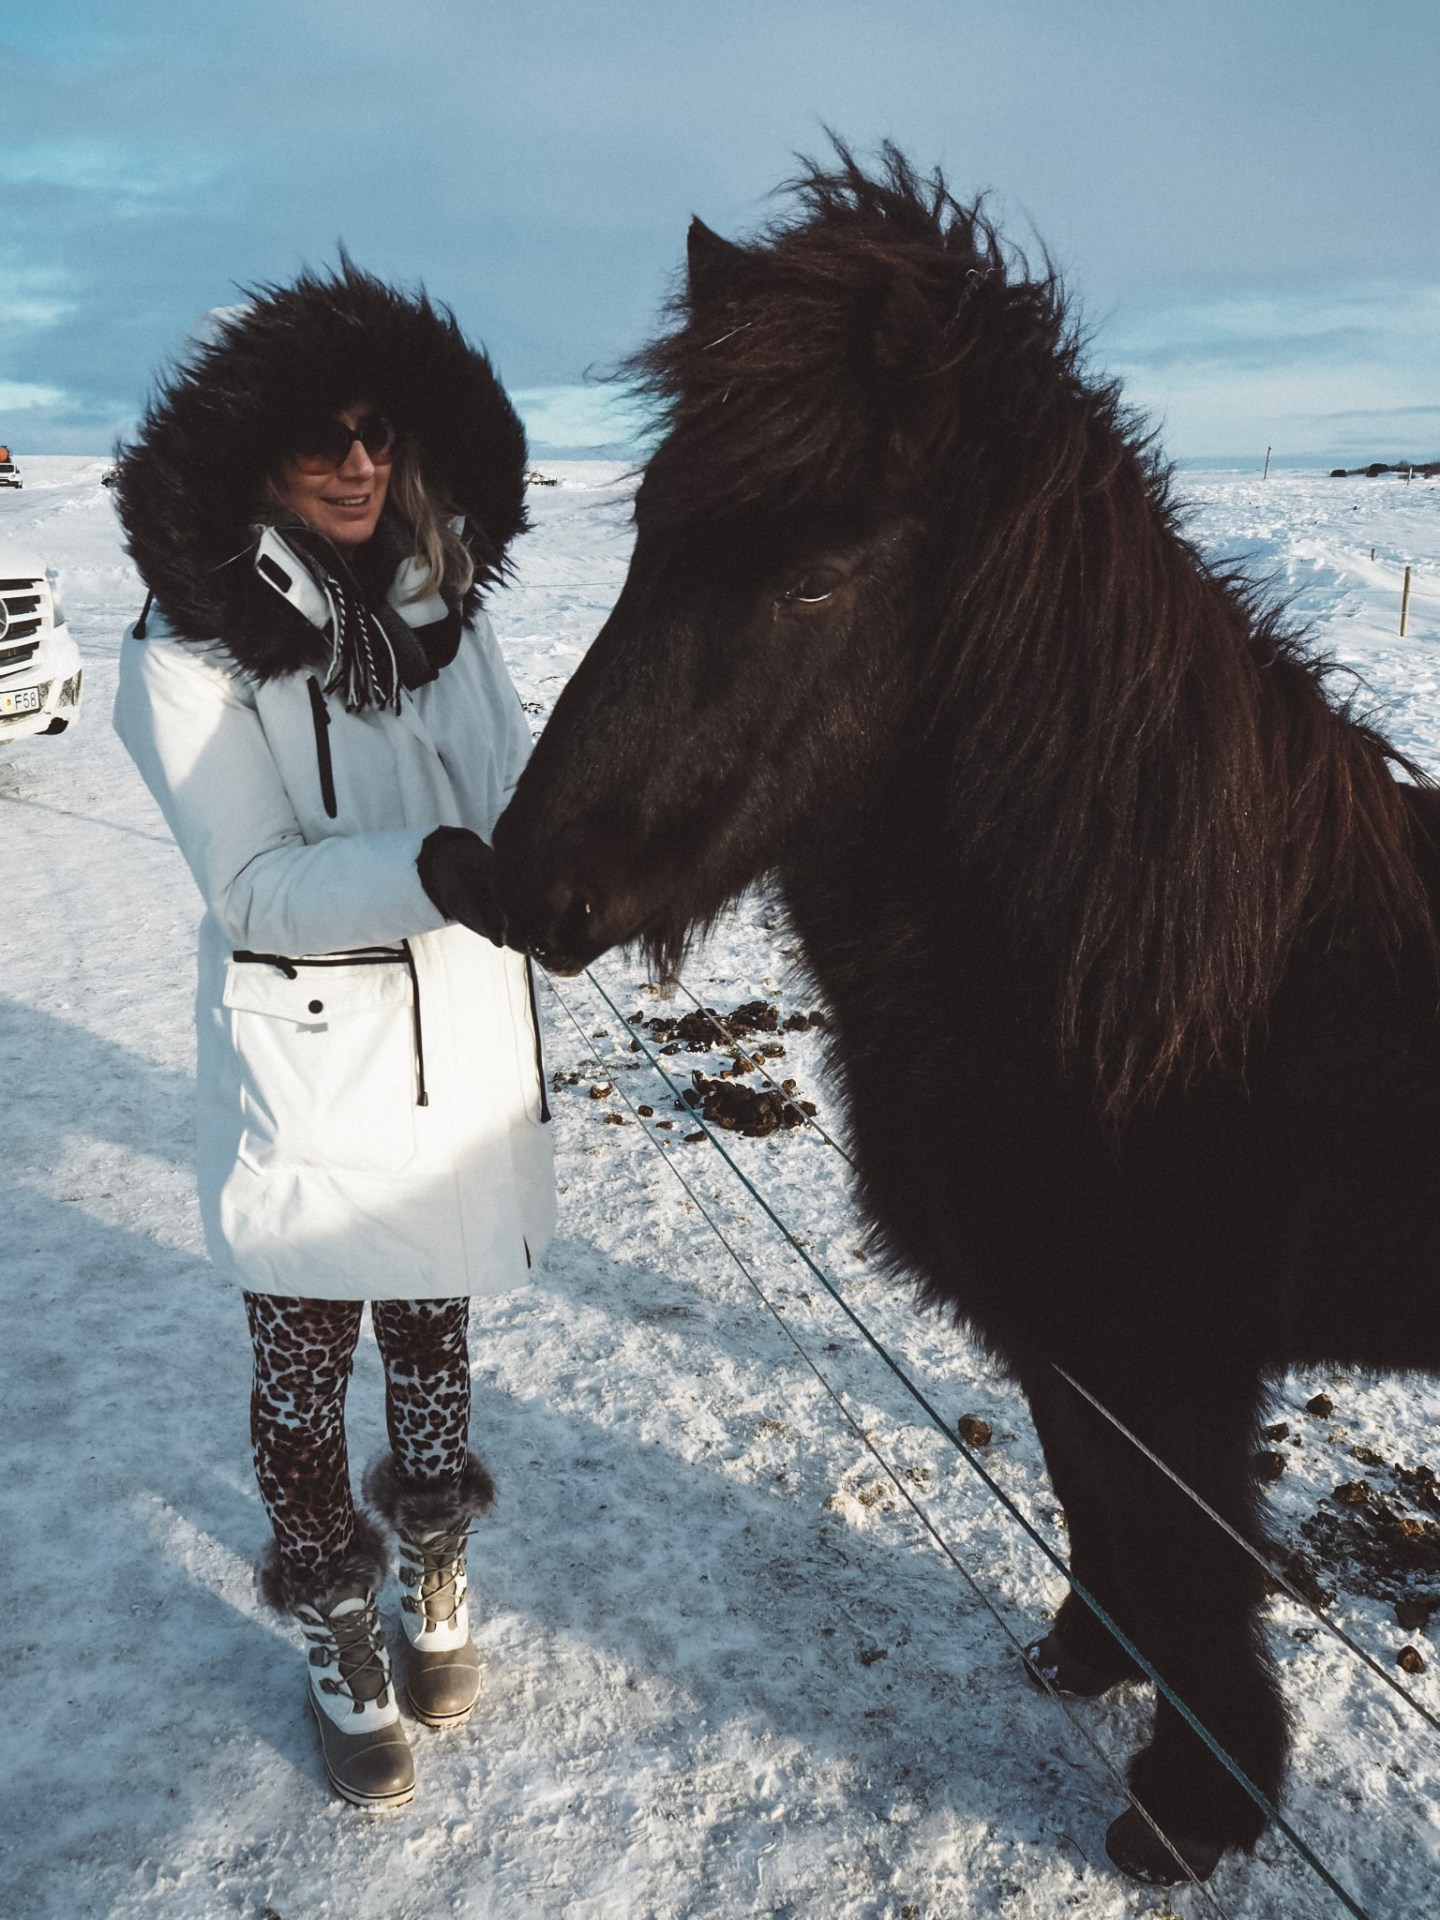 icelandic horse, fashion blogger, iceland, the golden circle